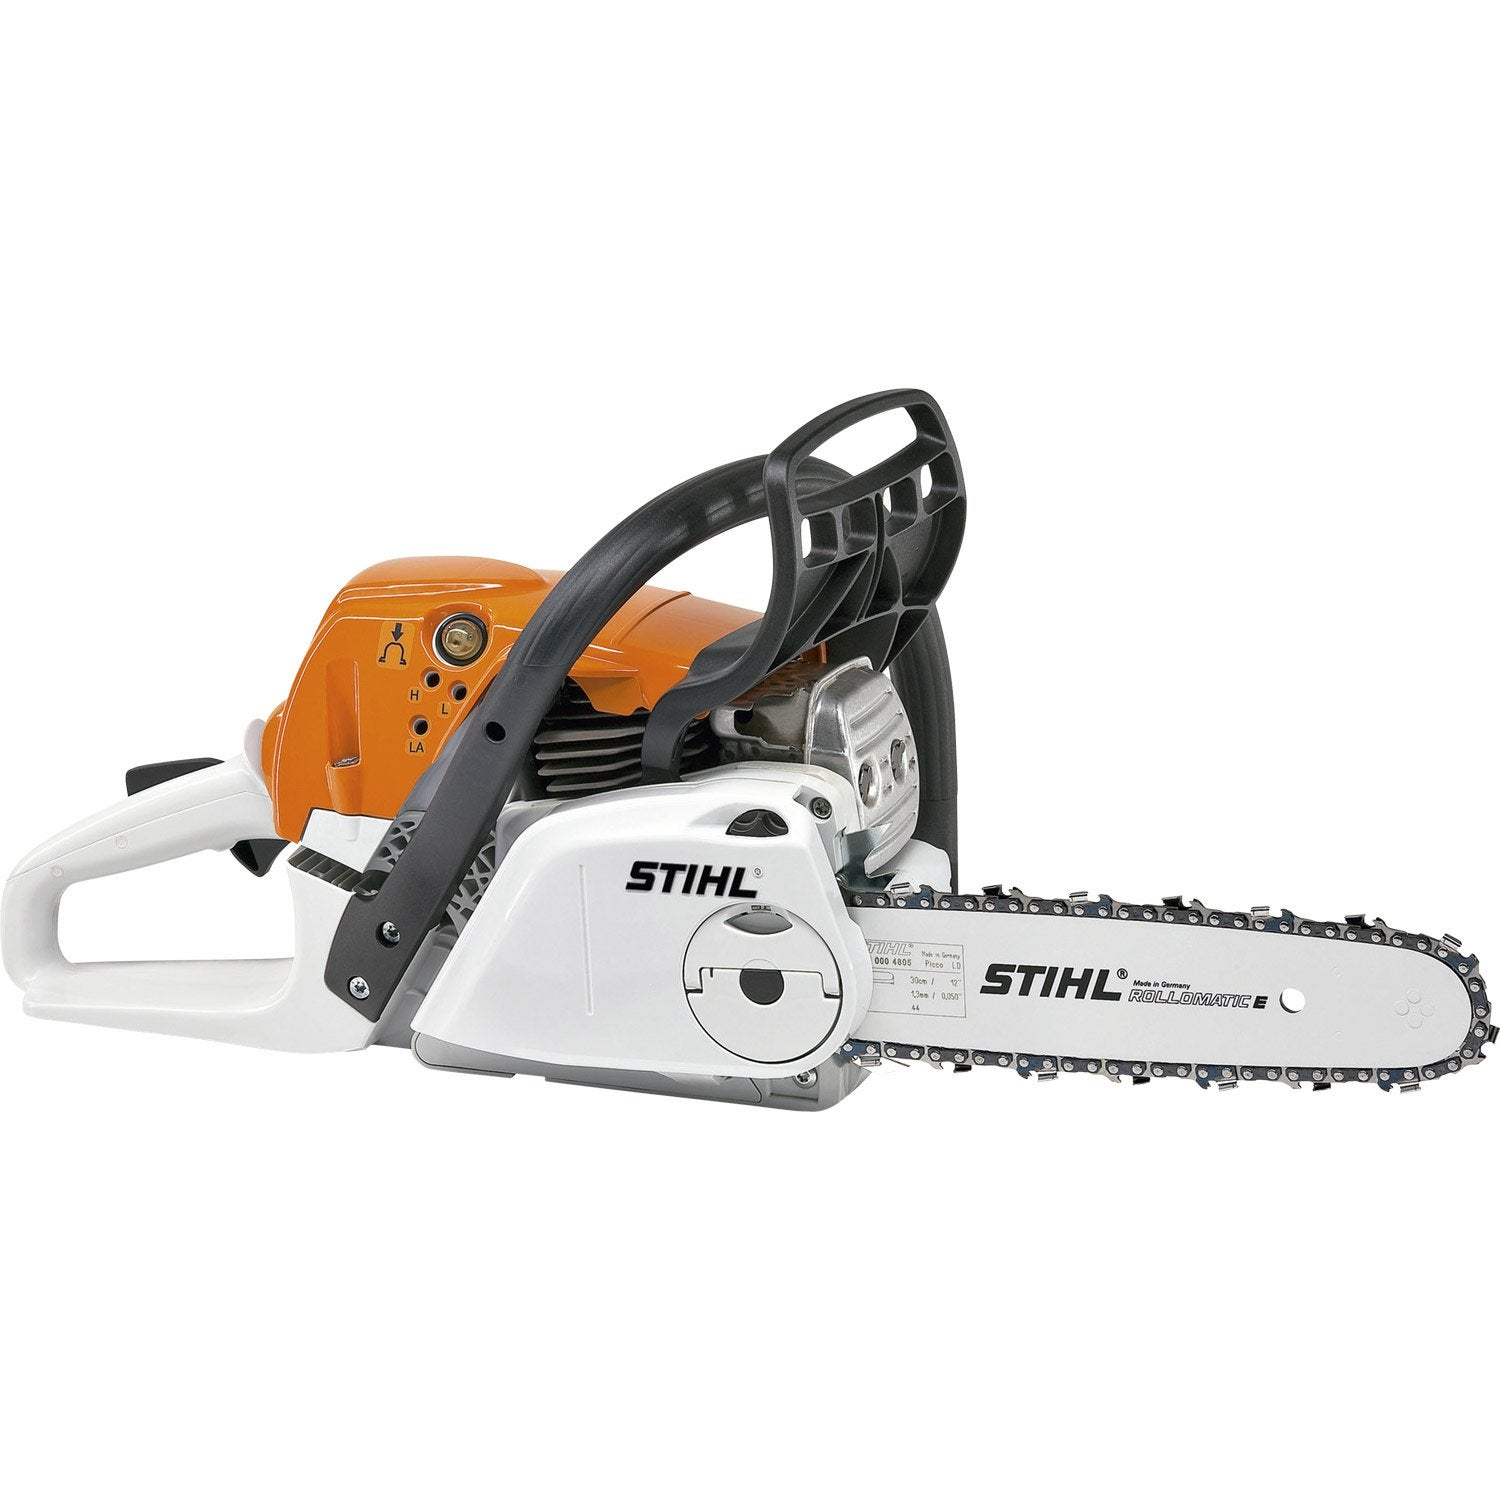 tron onneuse essence stihl ms251cbe 45 6 cc leroy merlin. Black Bedroom Furniture Sets. Home Design Ideas